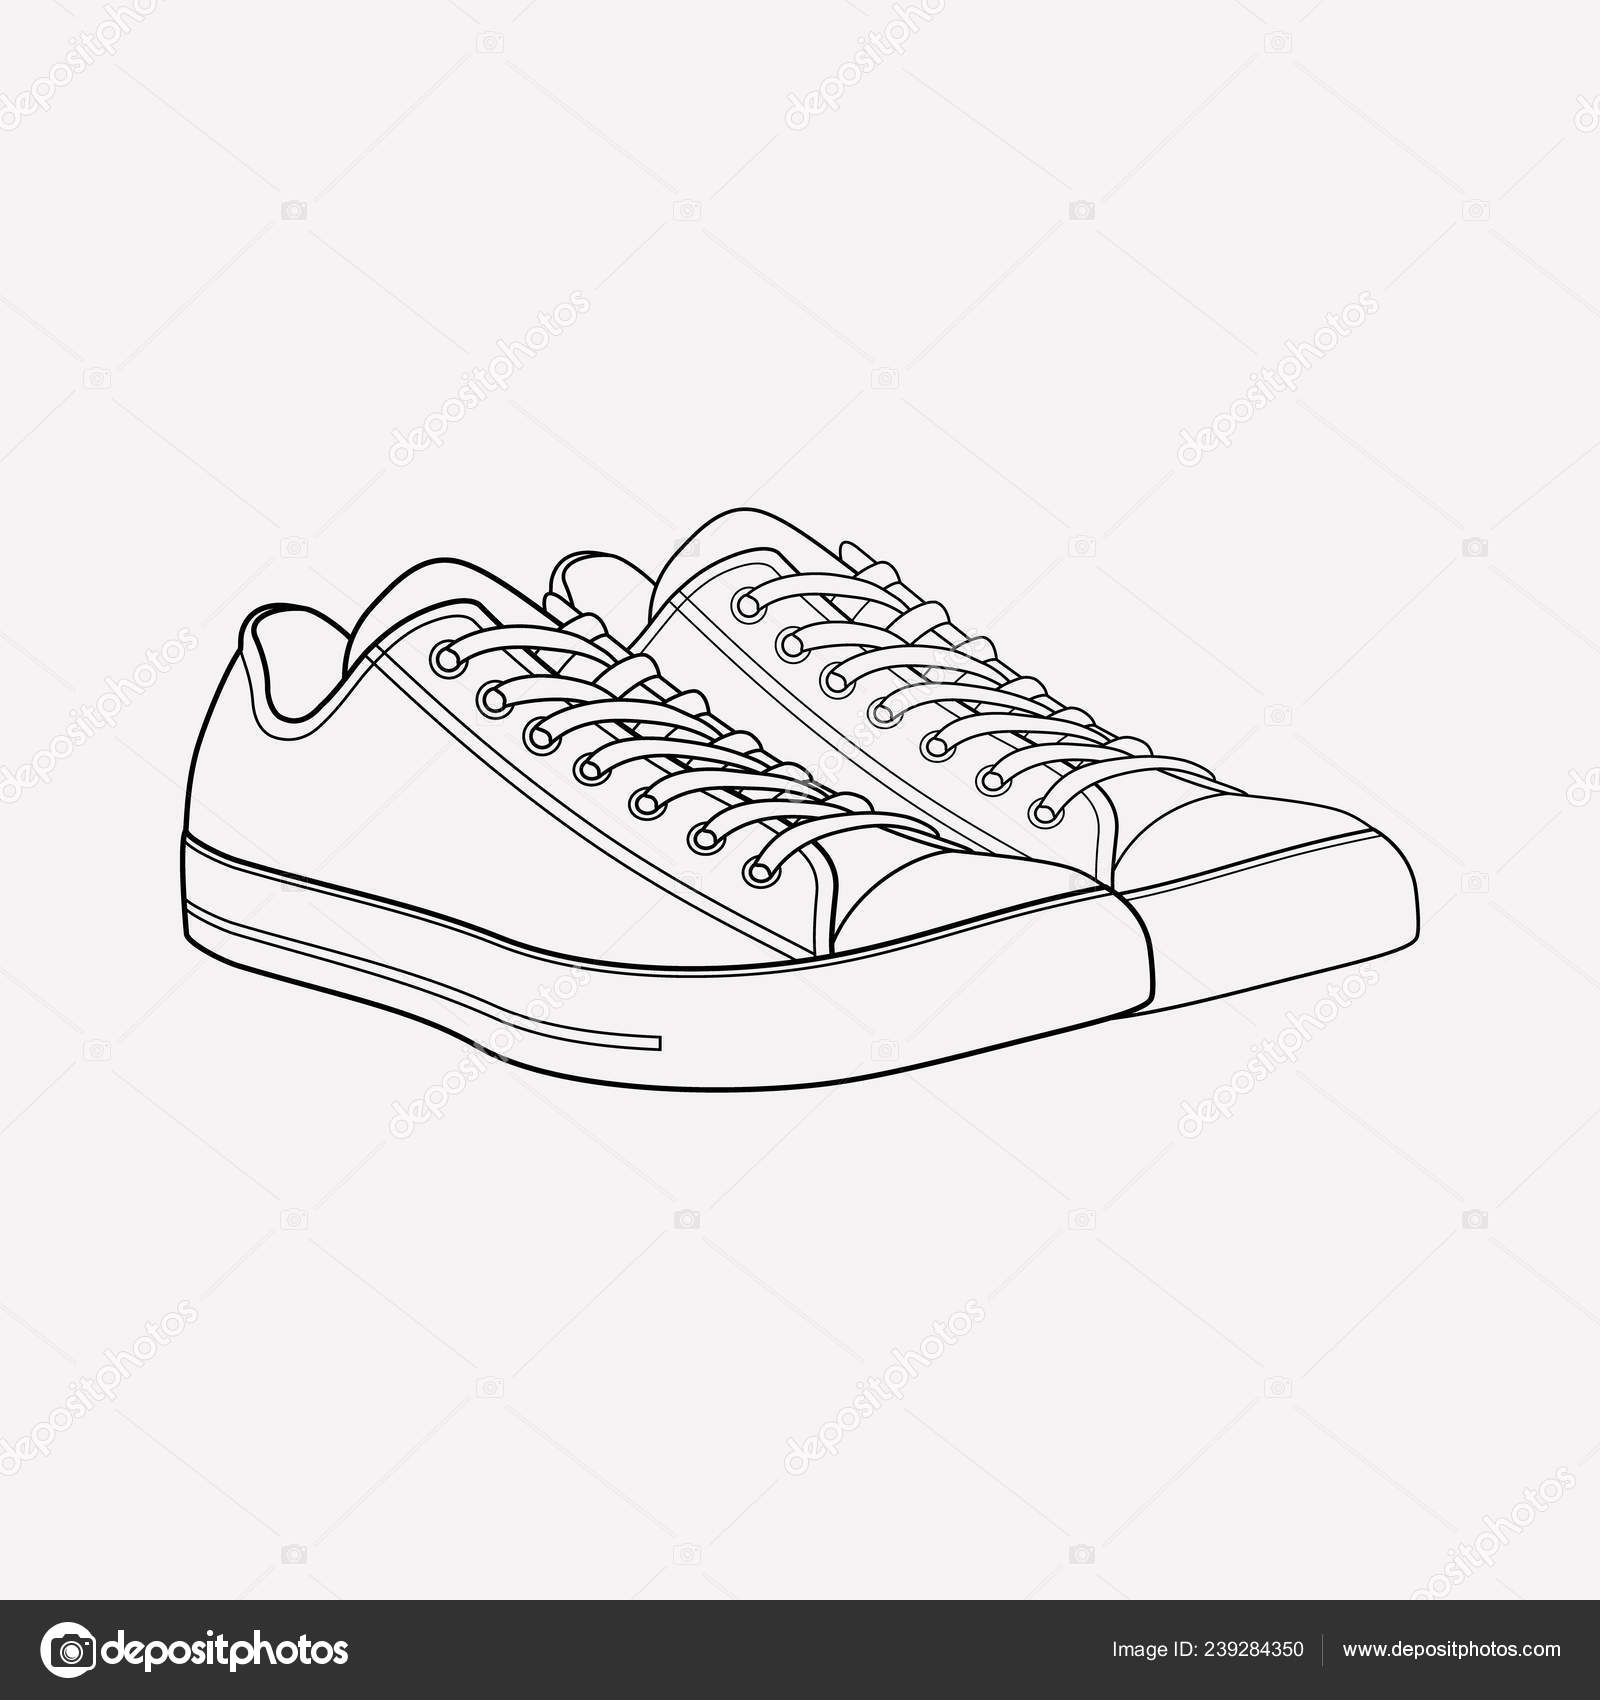 Converse shoes icon line element. illustration of converse